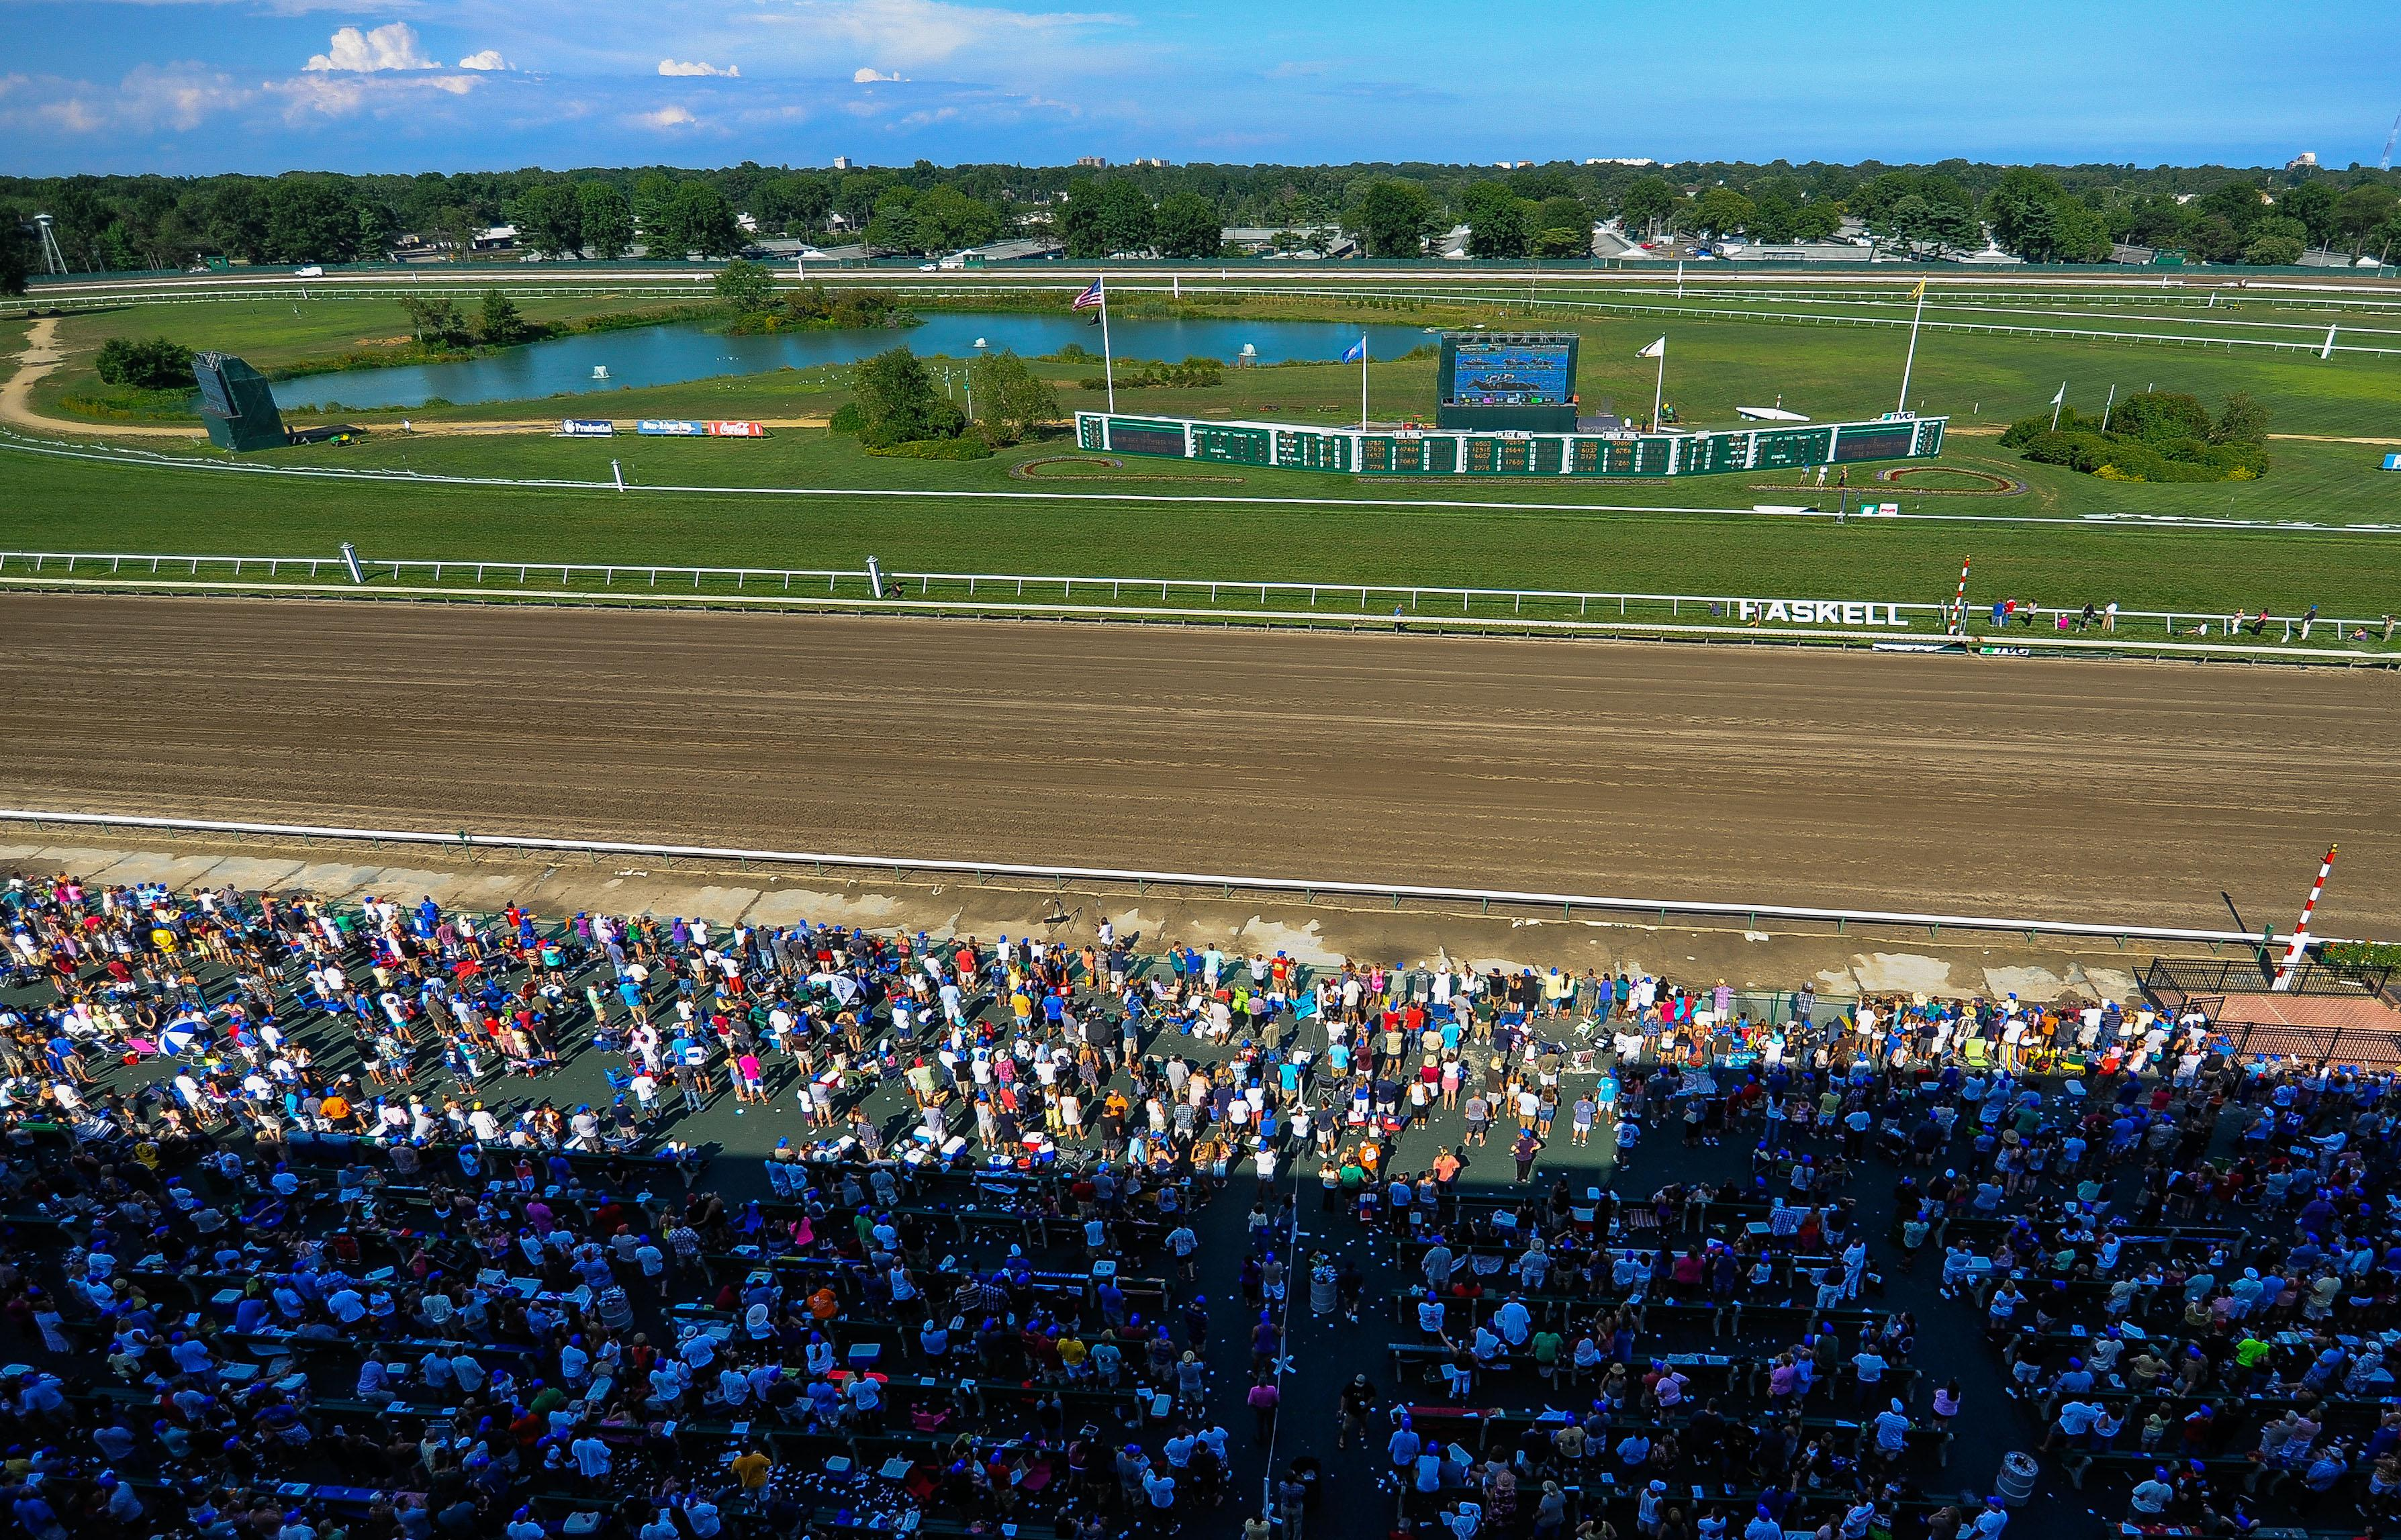 The Haskell day crowd at Monmouth Park.